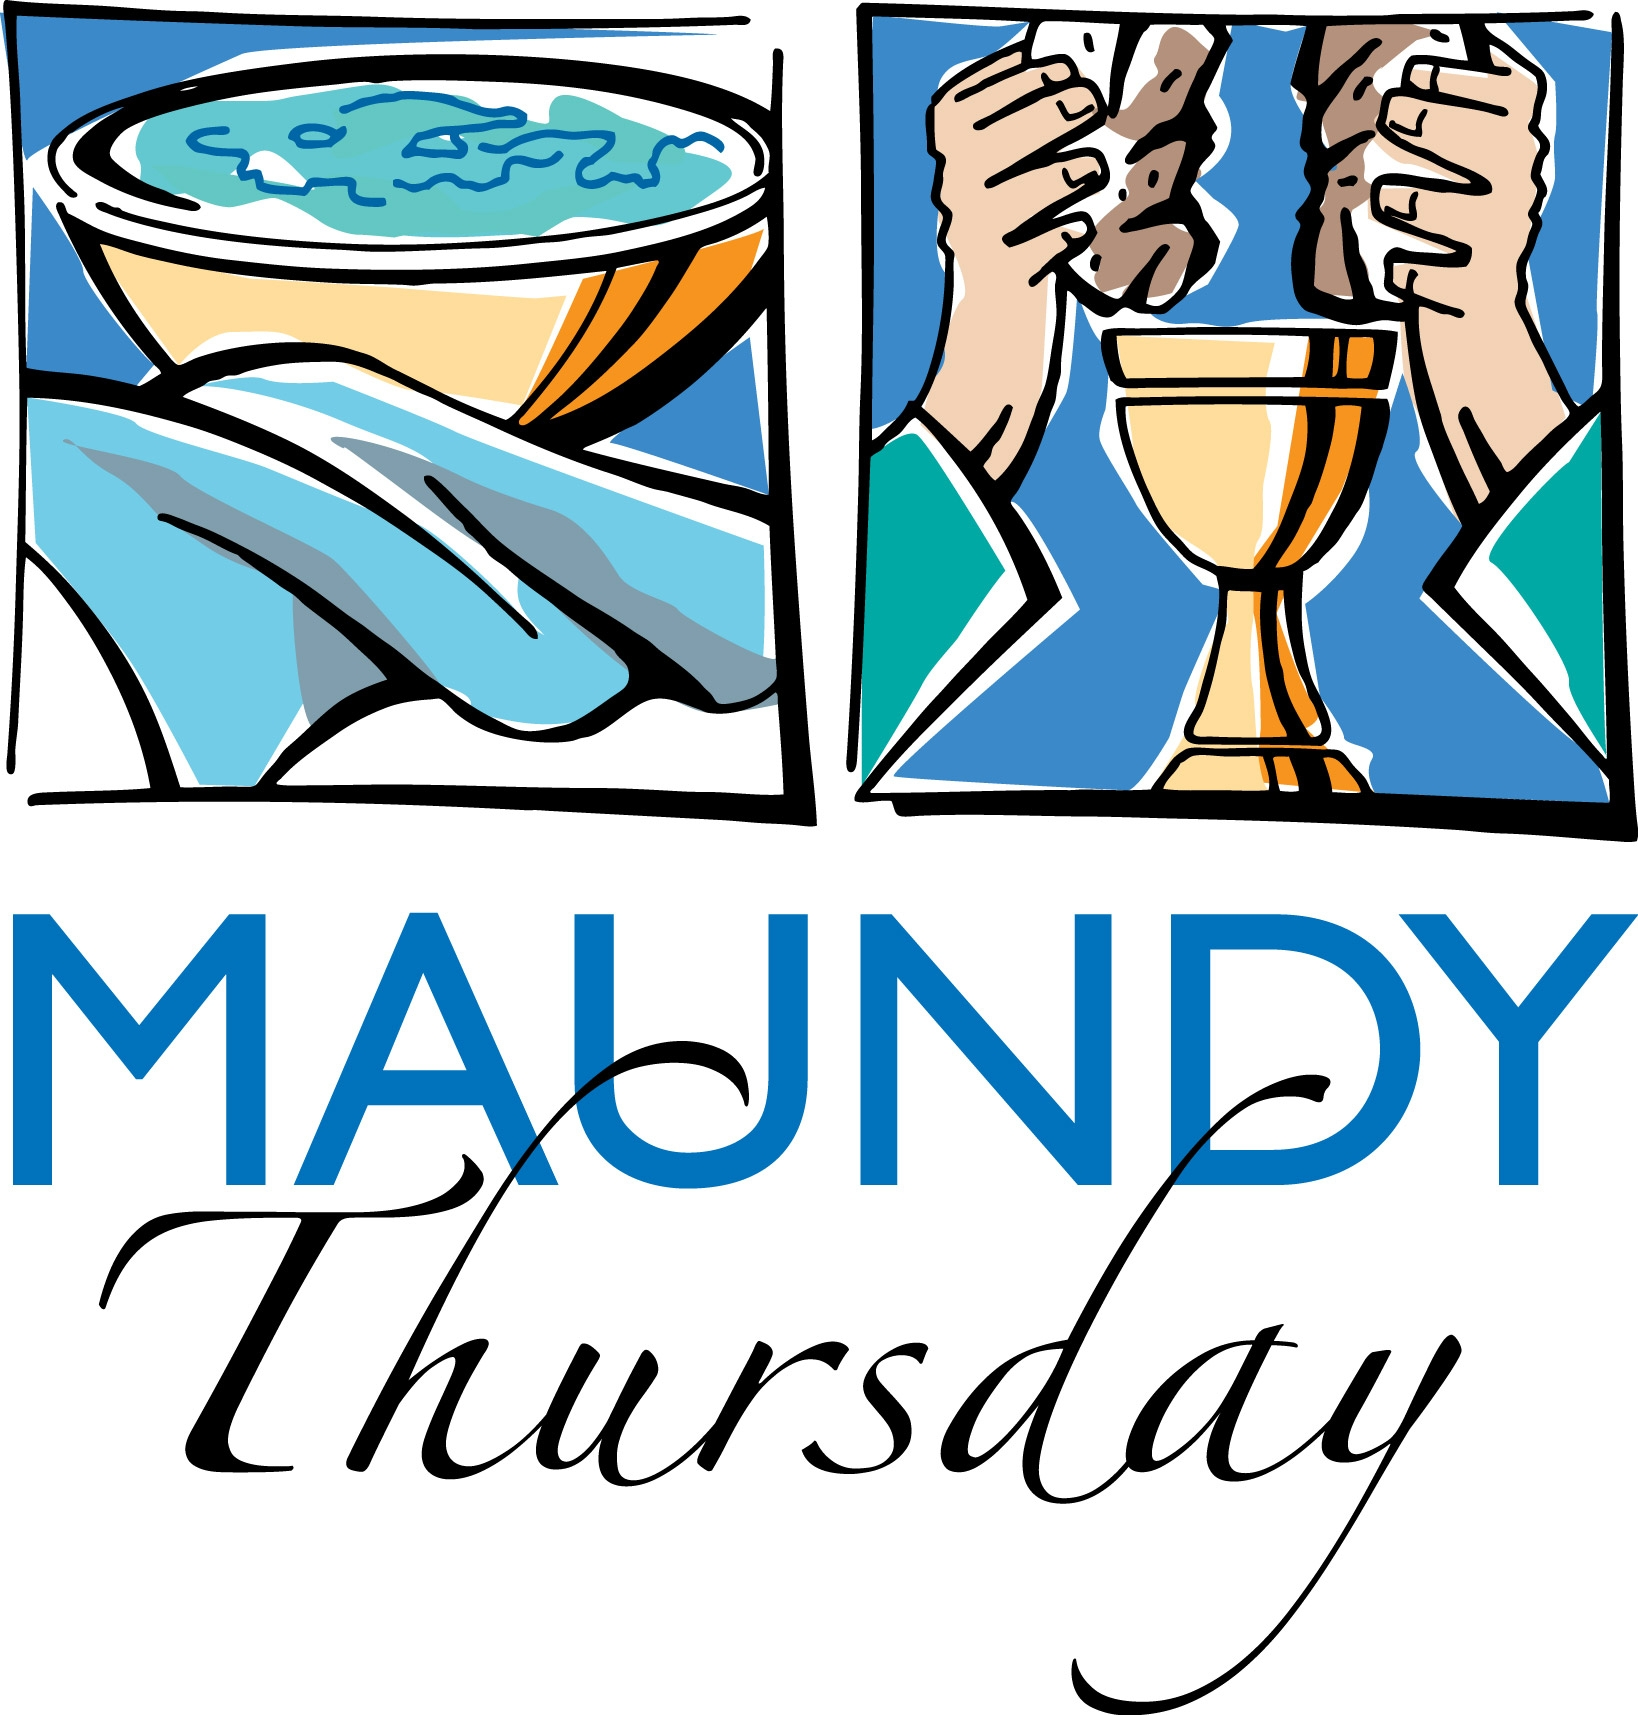 Holy Thursday Clipart at GetDrawings.com.